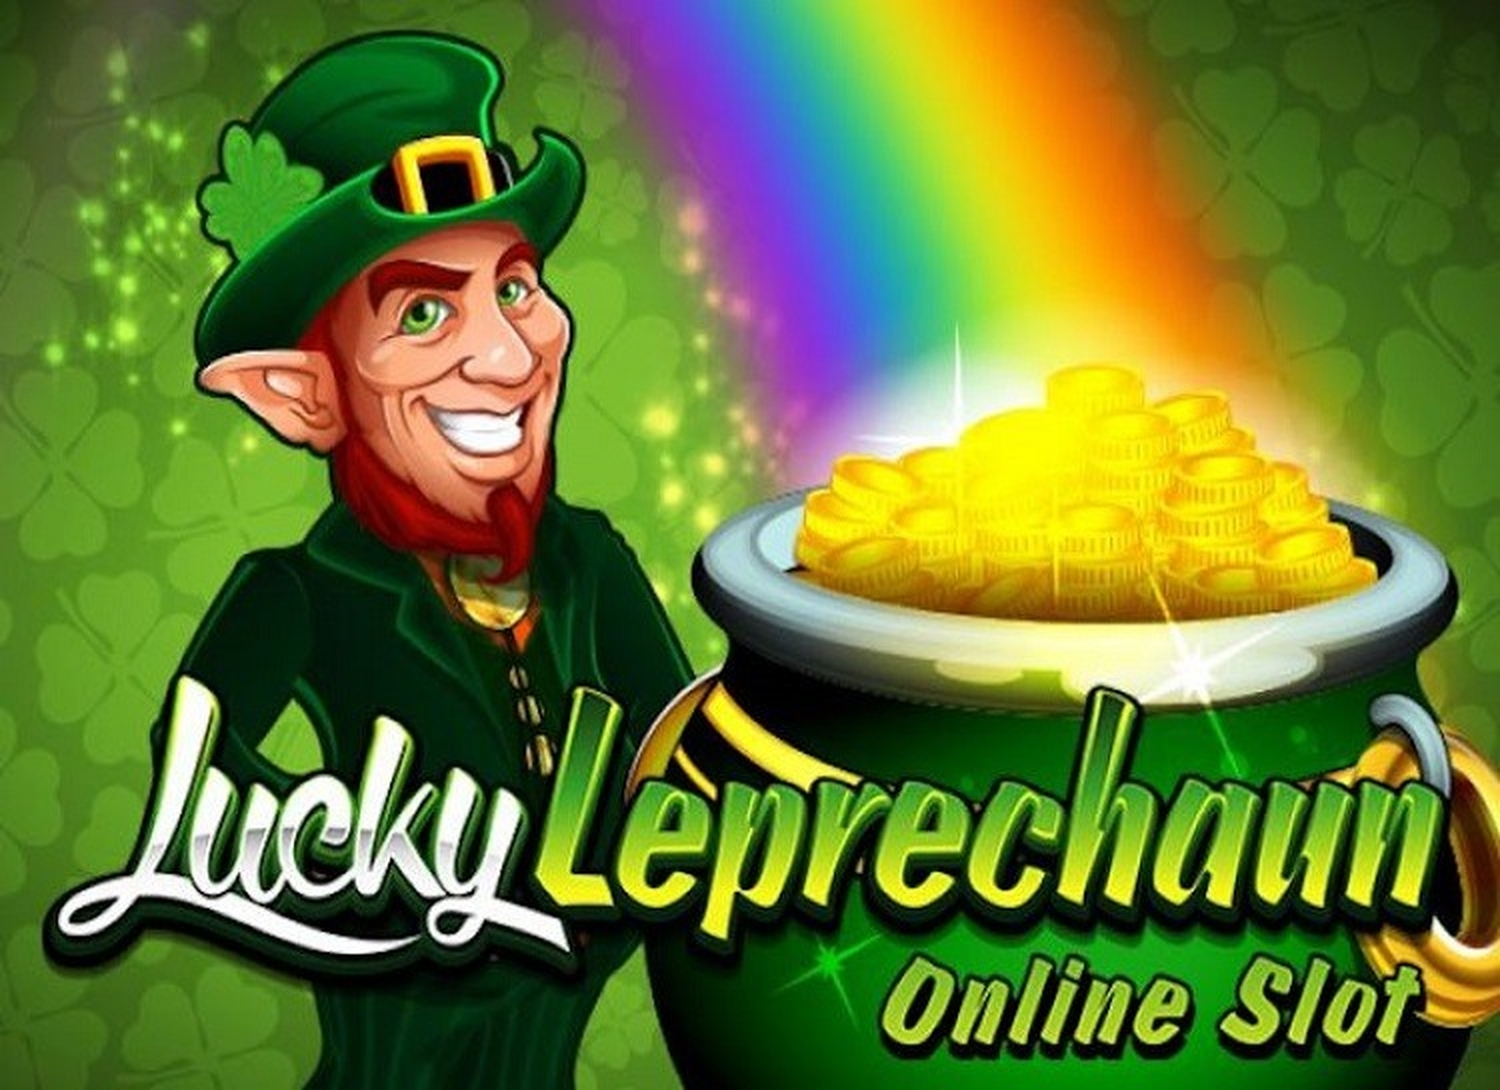 The Lucky Leprechauns Online Slot Demo Game by Genii